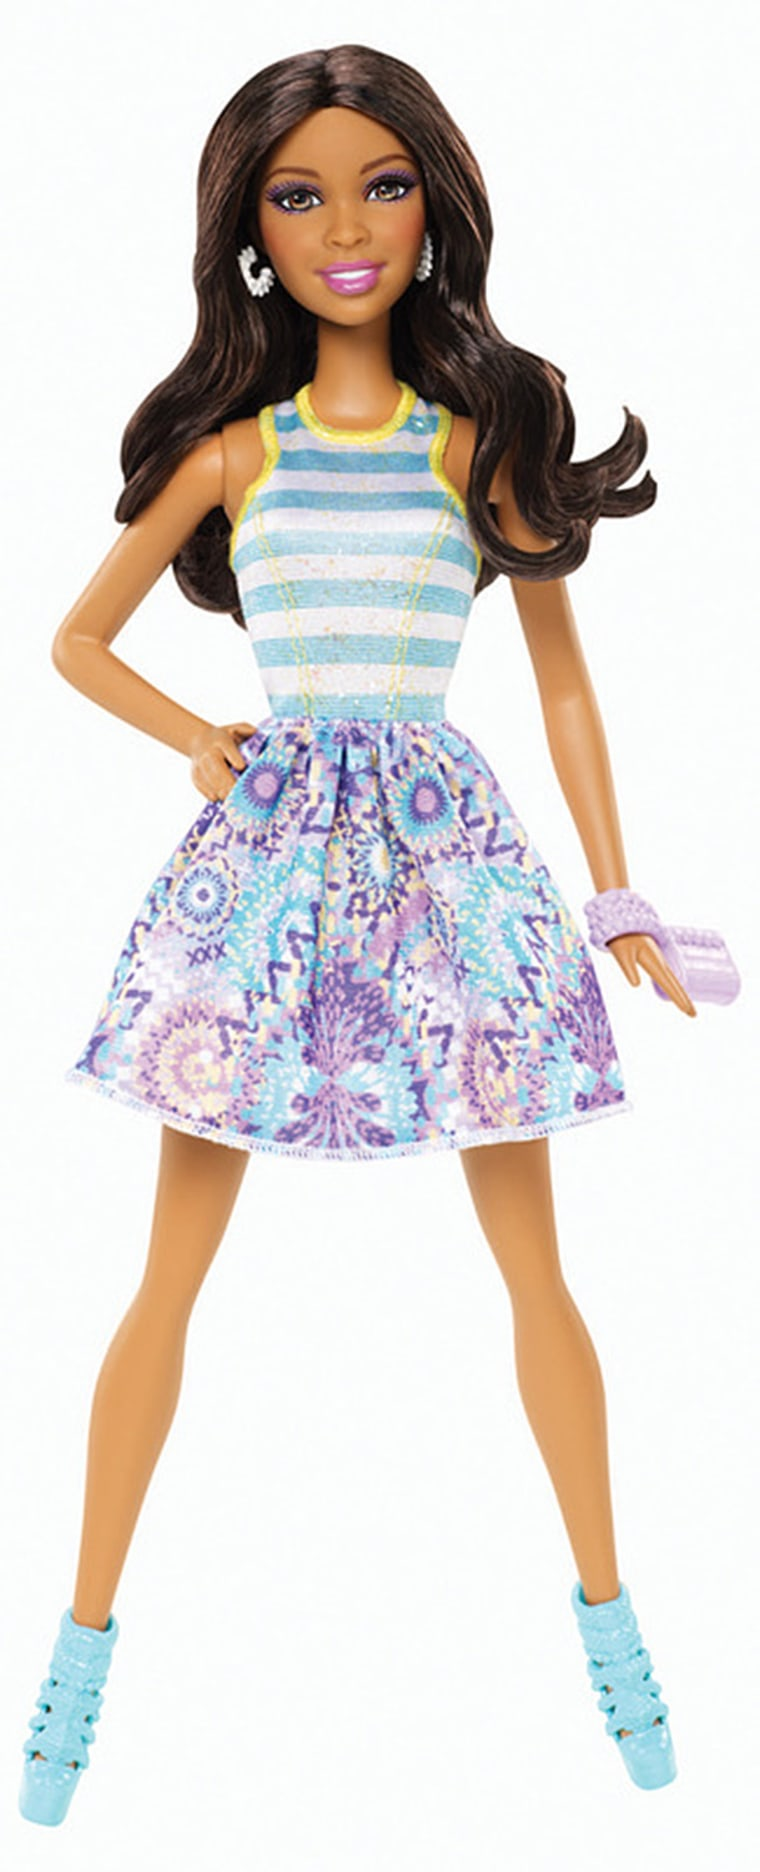 Barbie will be able to wear flats for the first time in 56 years